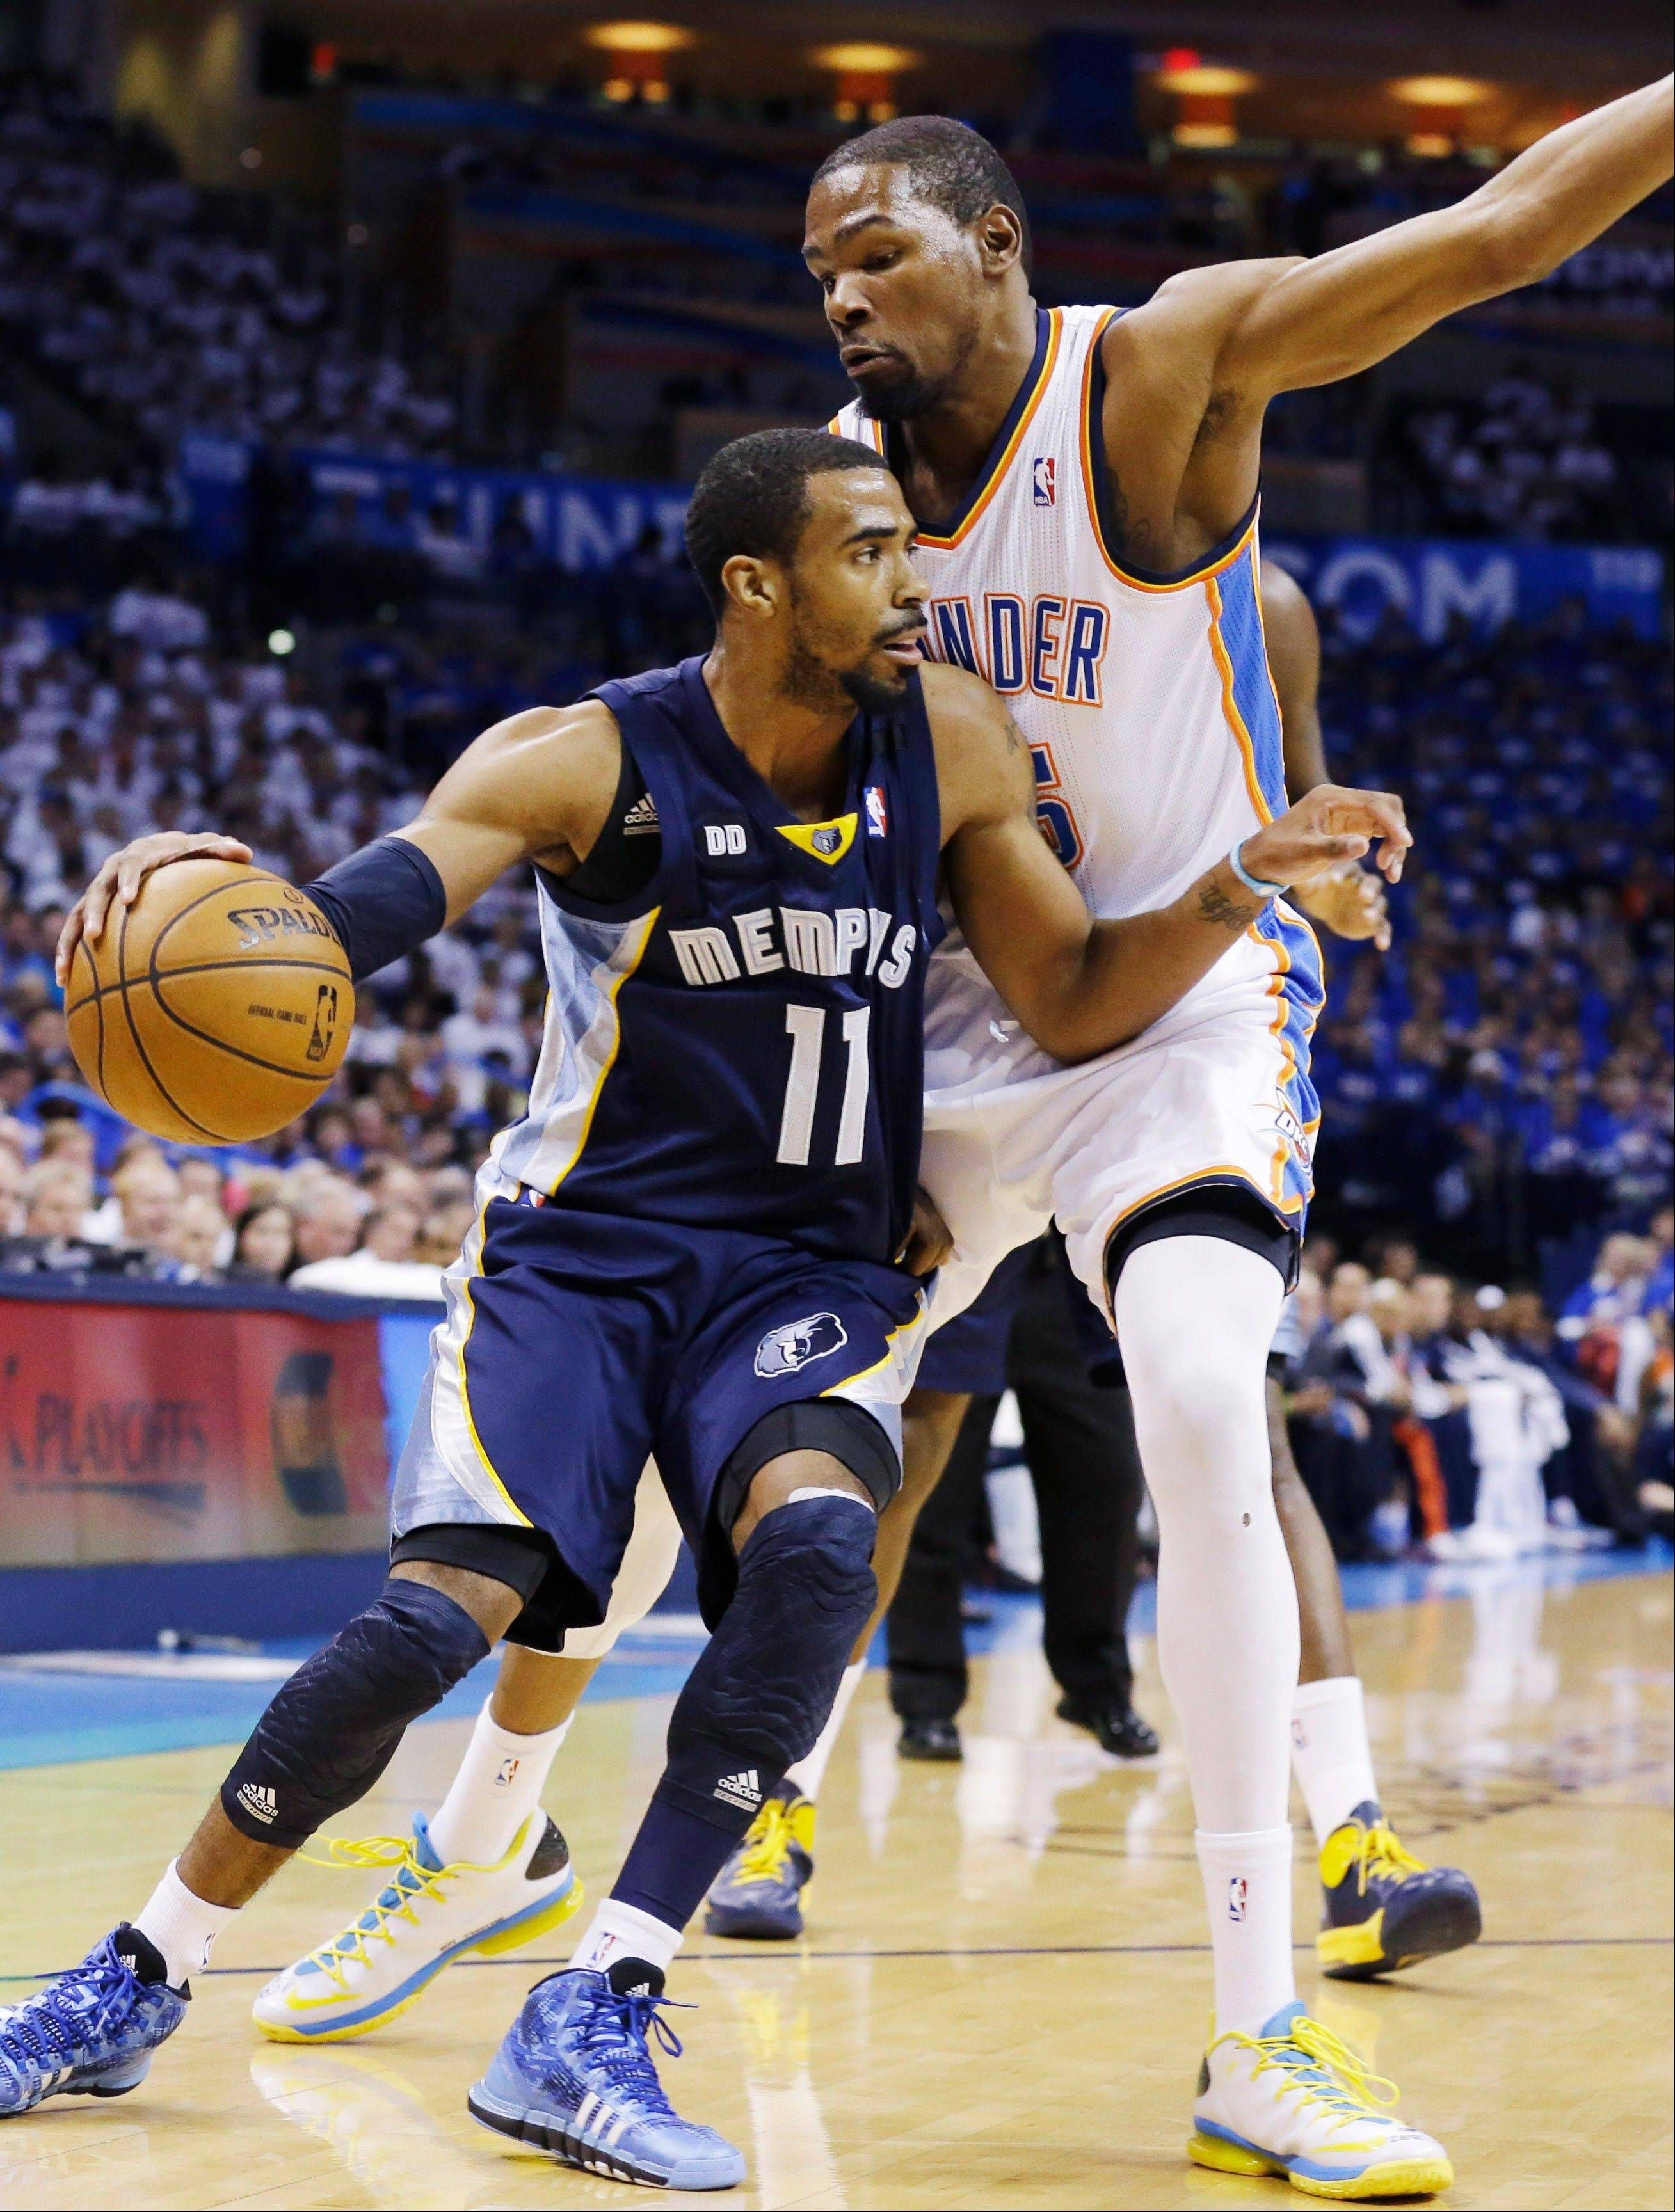 Memphis Grizzlies point guard Mike Conley (11) drives around Oklahoma City Thunder small forward Kevin Durant (35) during the first half at Game 2 of their Western Conference semifinal NBA basketball playoff series Tuesday, May 7, 2013, in Oklahoma City.